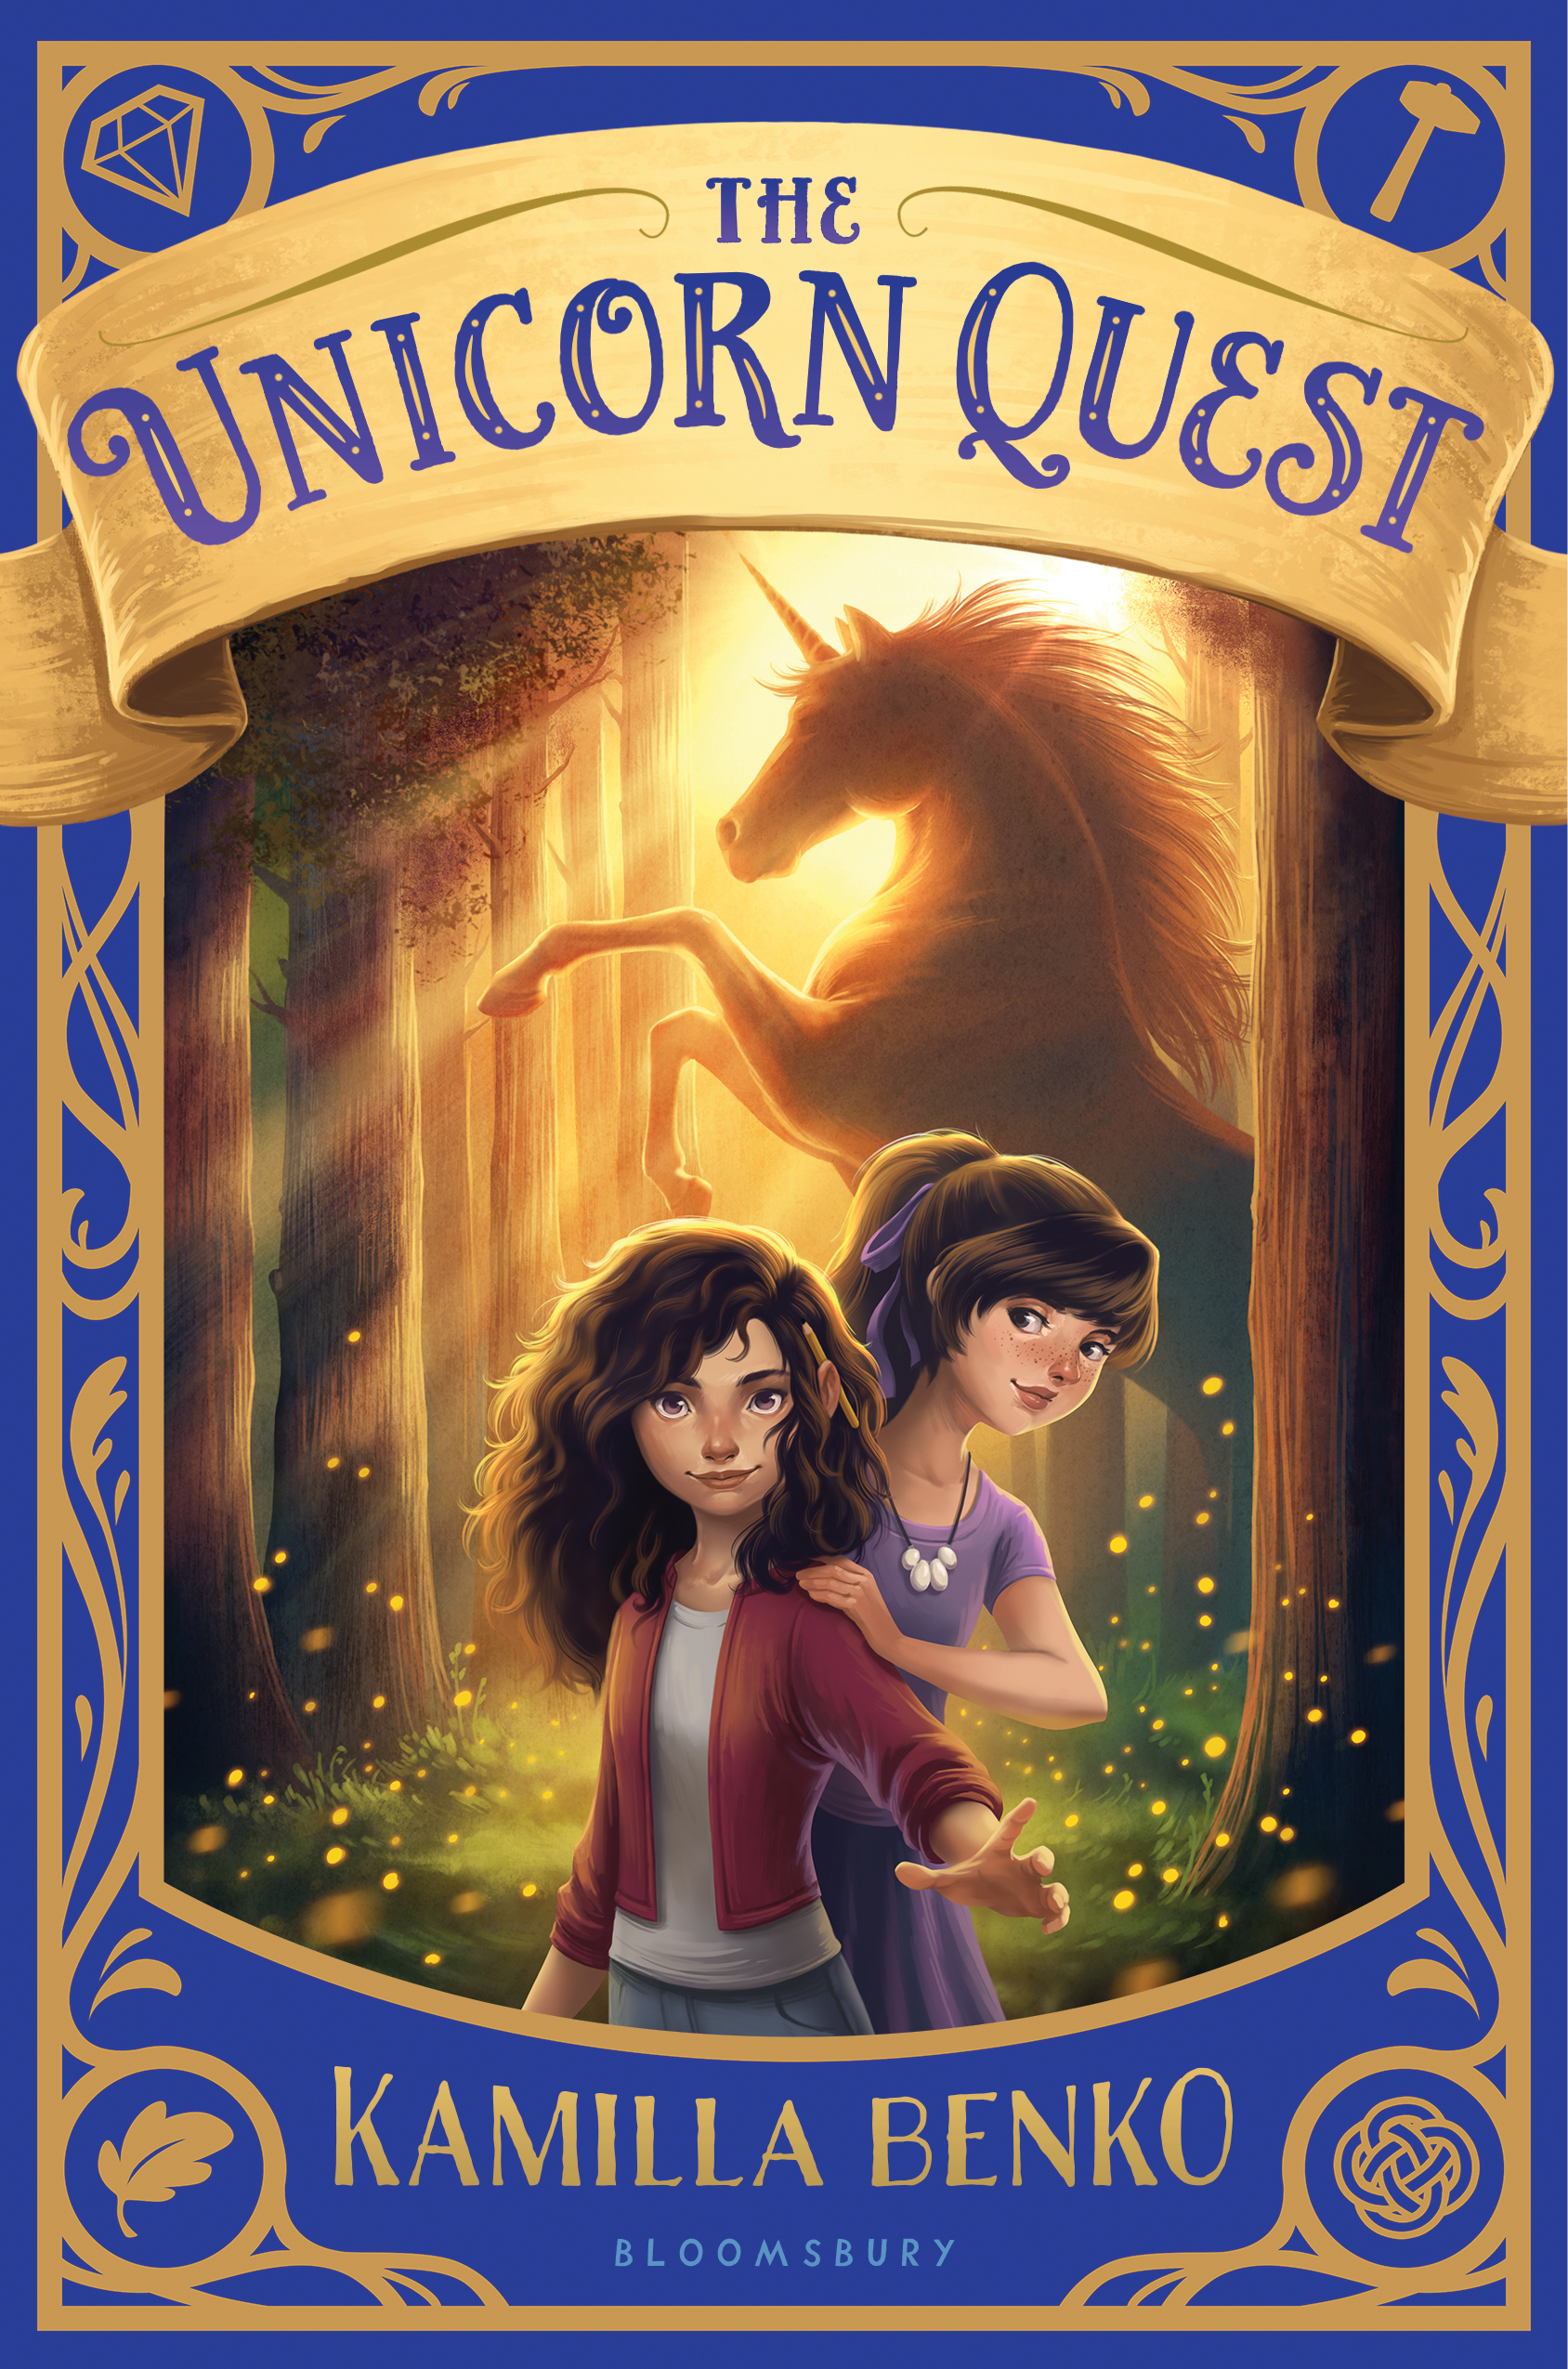 """BEA Buzz Book  2018 Indie Next Pick  Scholastic Book Club Selection  """"Stellar."""" -  The New York Times  starred review  """"Fans of magic and fantasy, especially those who love Madeleine L'Engle's A WRINKLE IN TIME or the dark, creepy atmosphere of Neil Gaiman's CORALINE can't miss this debut."""" -  Booklist , starred review  """"Magical.""""  - Kirkus  review on the upcoming sequel THE UNICORN QUEST: SECRET IN THE STONE   Goodreads »"""